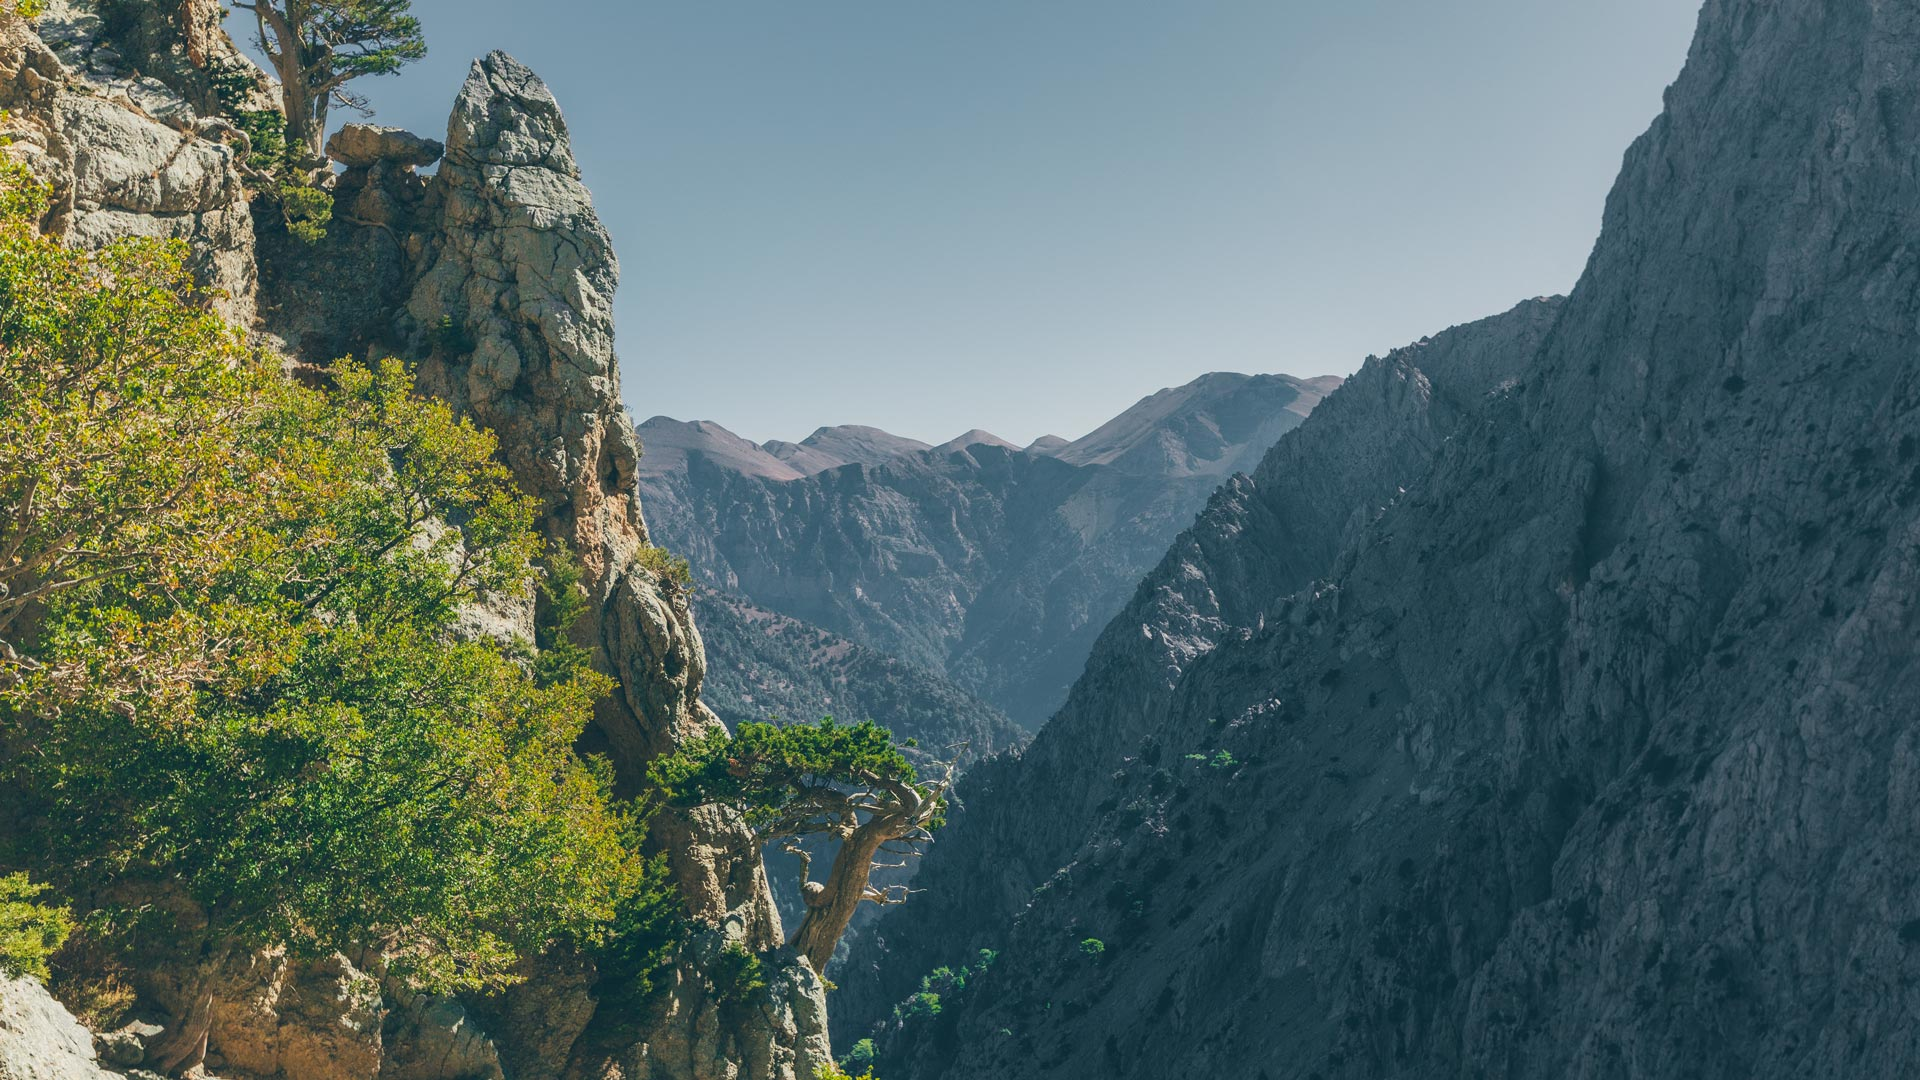 Samaria is the longest gorge in Greece and forms part of the E4 hiking trail that traverses Europe